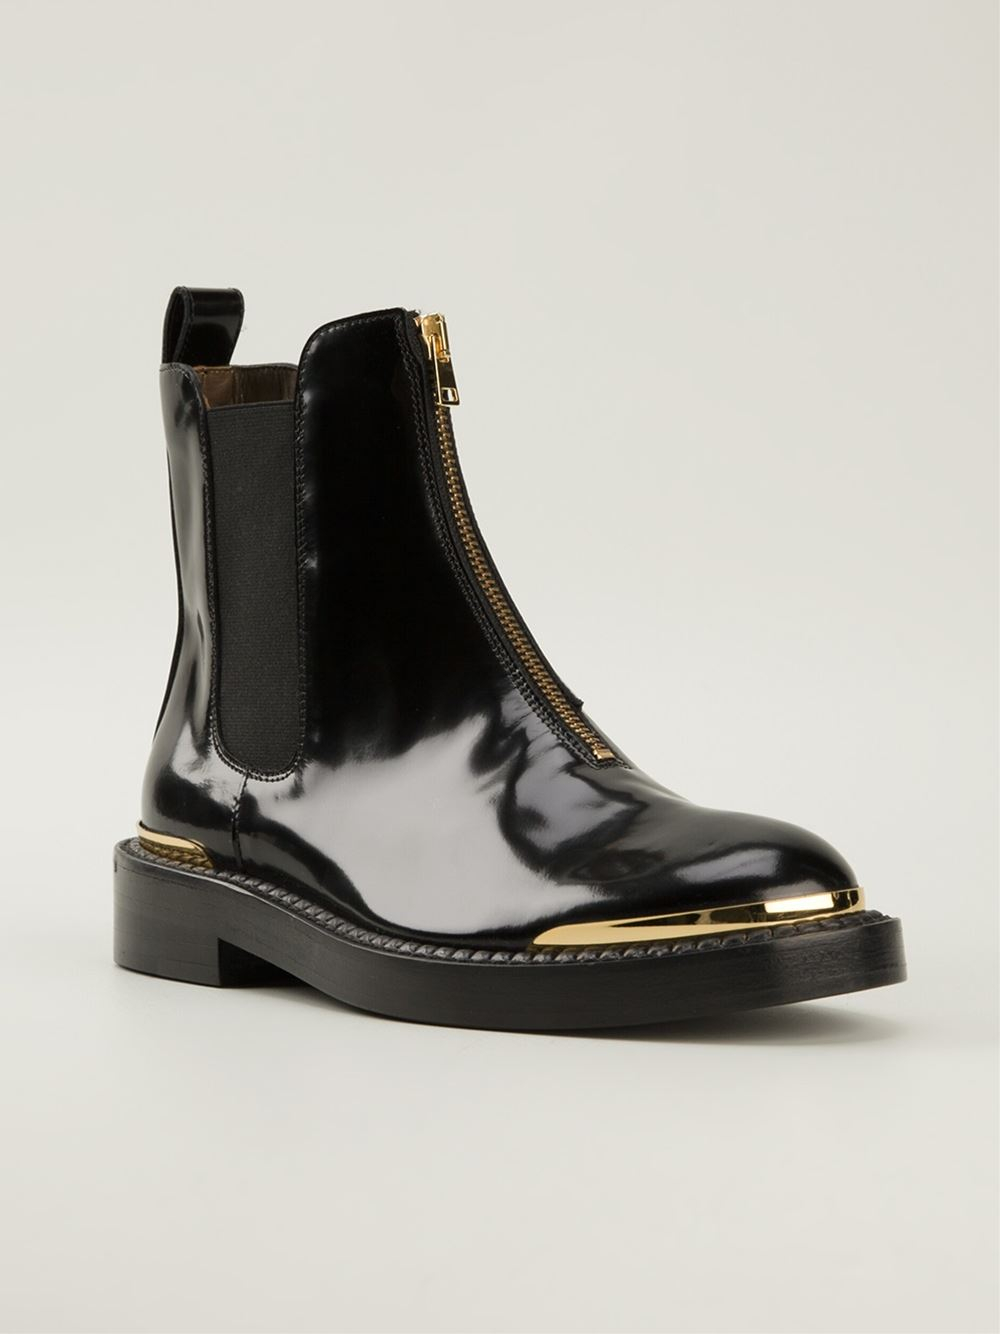 Marni 'Chelsea' Zip Front Boots in Black